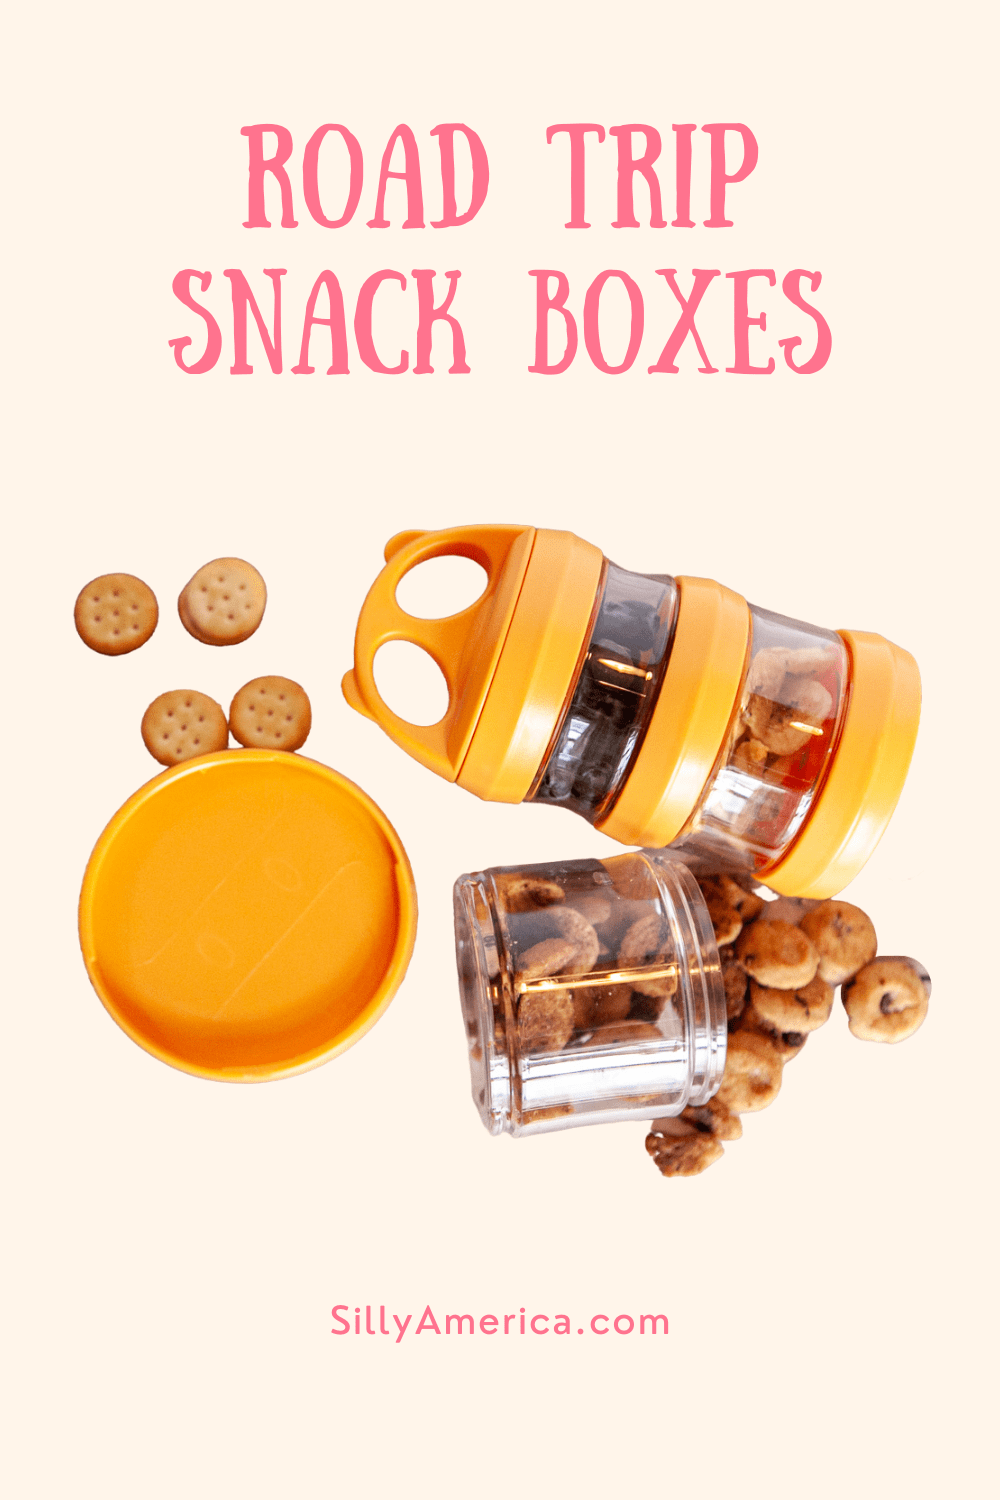 Road trip snack boxes are a fun way to get nourishment throughout the day on long car rides. Pack road trip snacks on your adventure for a fun and healthy treat for kids, teens, and adults. How do you make one? And what snacks should you use? Read on! #RoadTripSnacks #RoadTripSnacksForAdults #Healthy#RoadTripSnacks #RoadTripSnacksForKids #RoadTripSnacksTeens #RoadTripSnacks #EasyRoadTripSnacks #RoadTripSnacksIdeas #RoadTripSnacksList #FamilyRoadTripSnacks